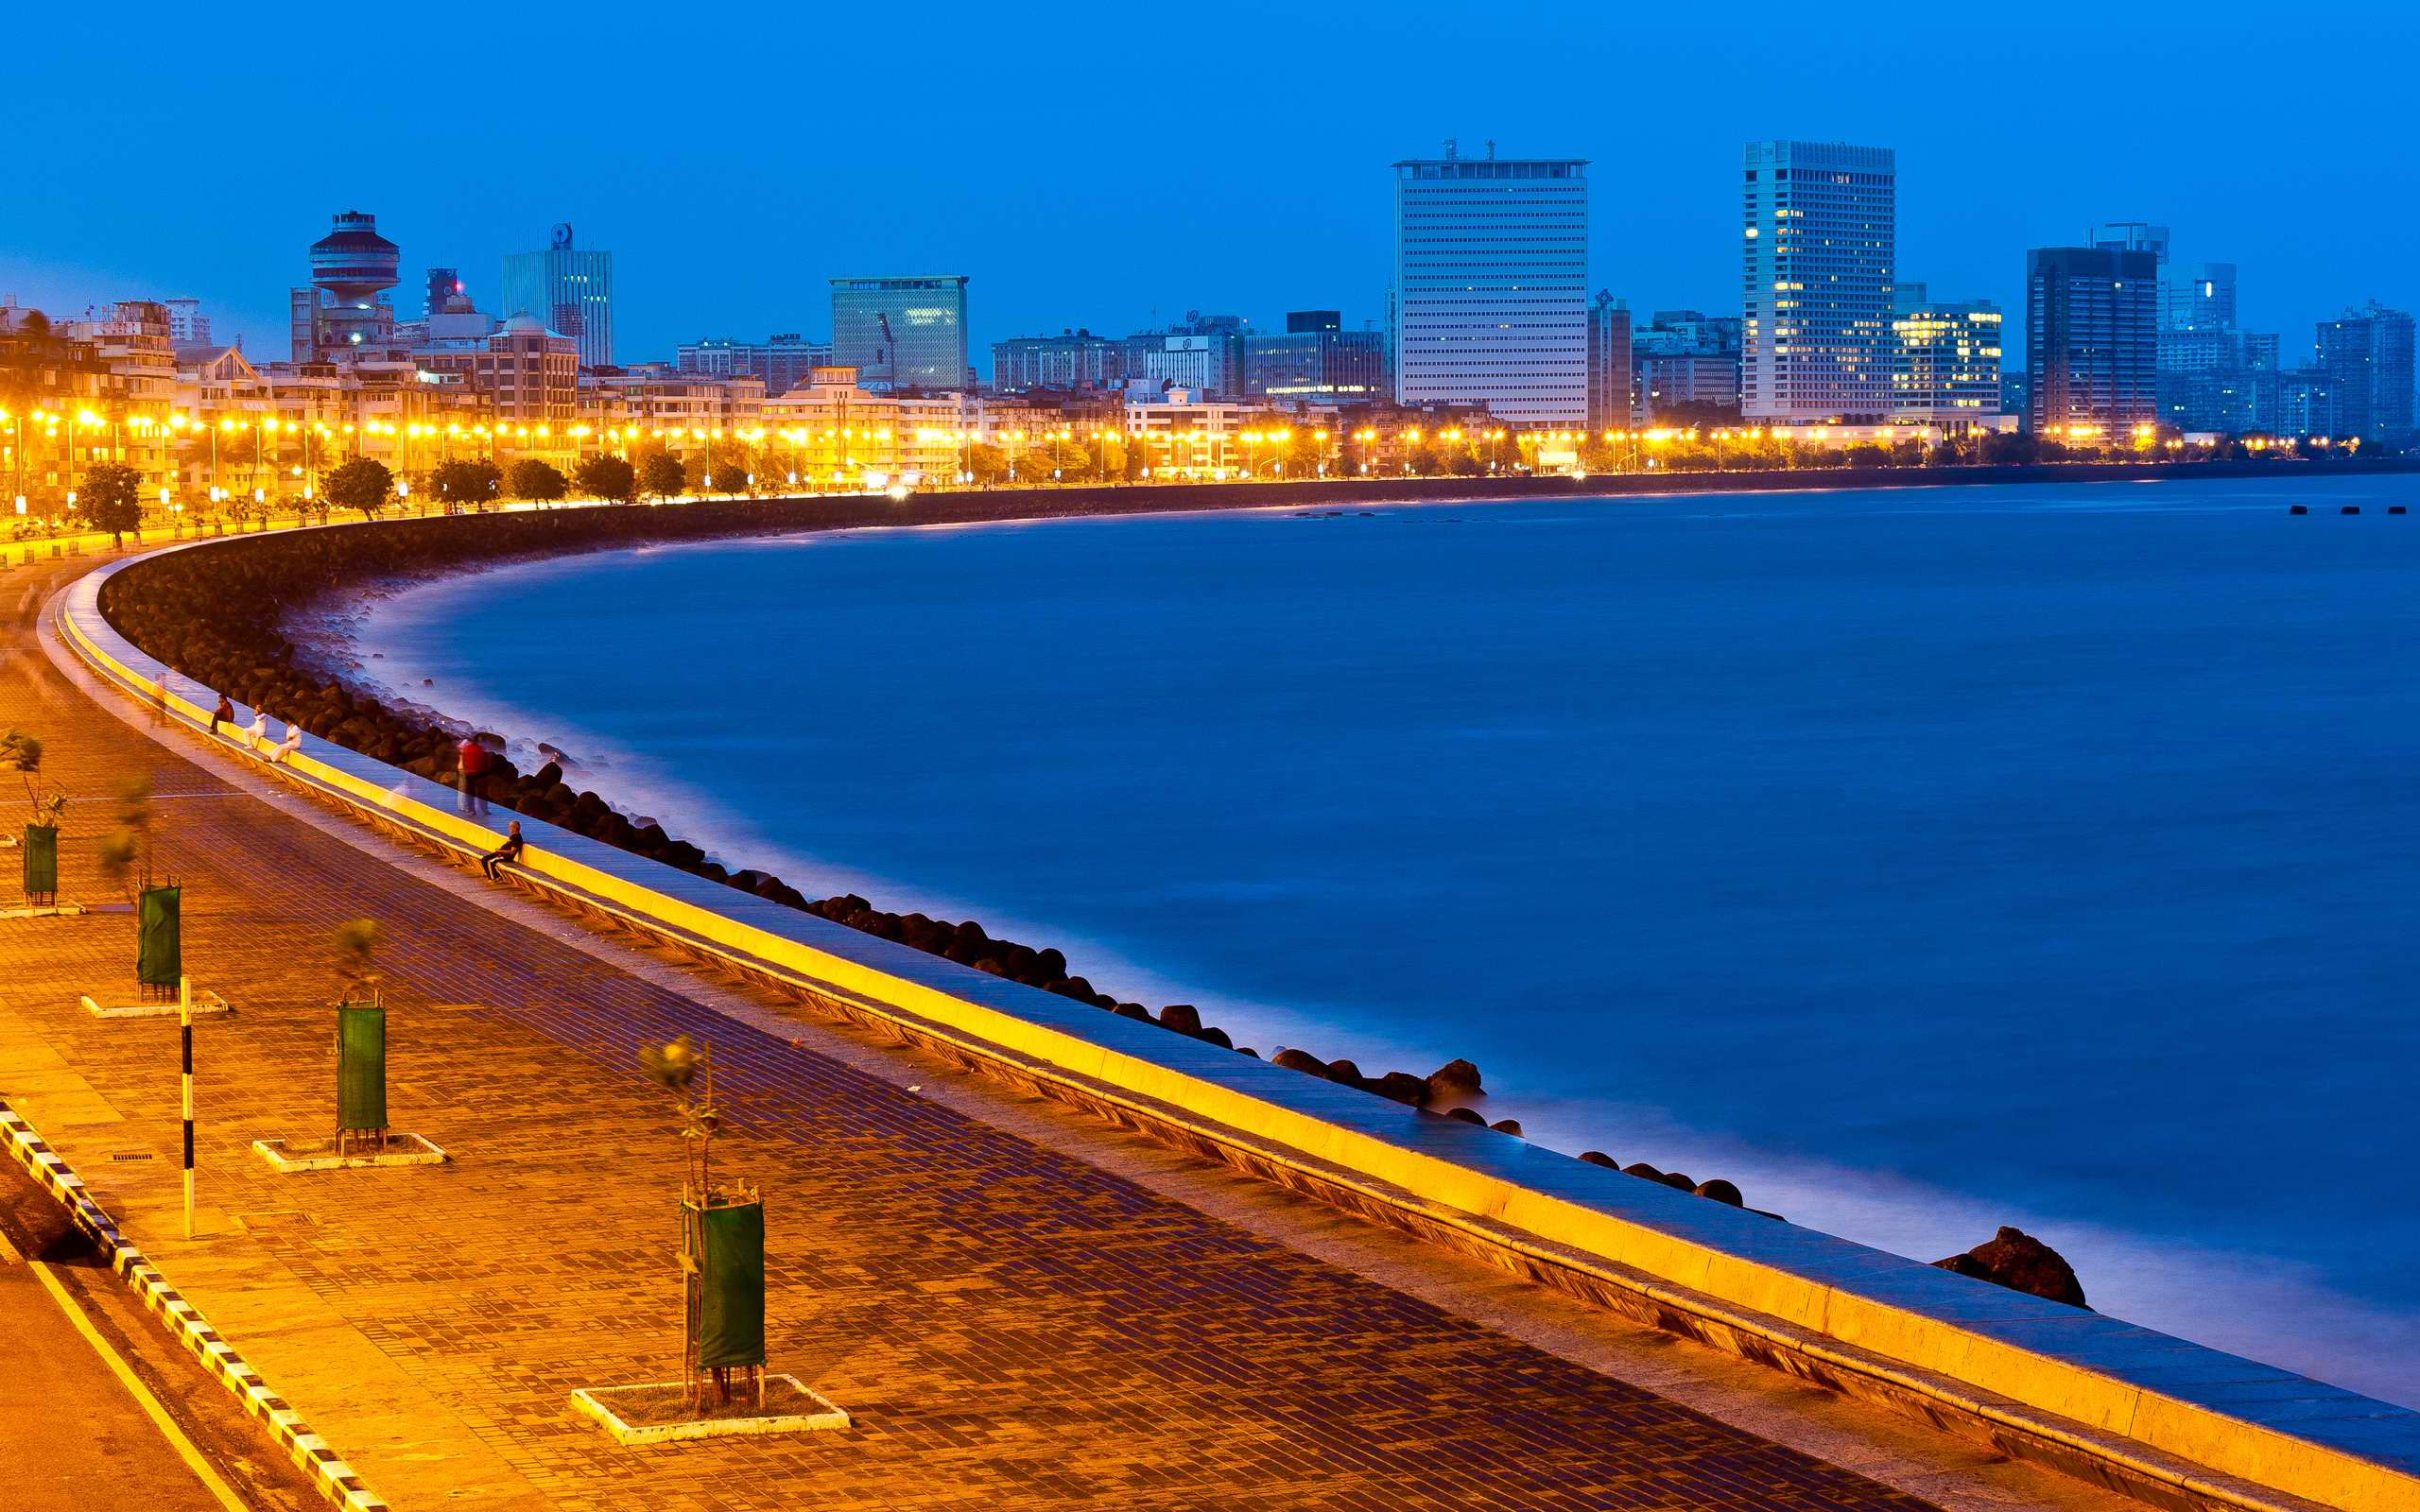 Mumbai Wallpapers HD Backgrounds, Image, Pics, Photos Free Download